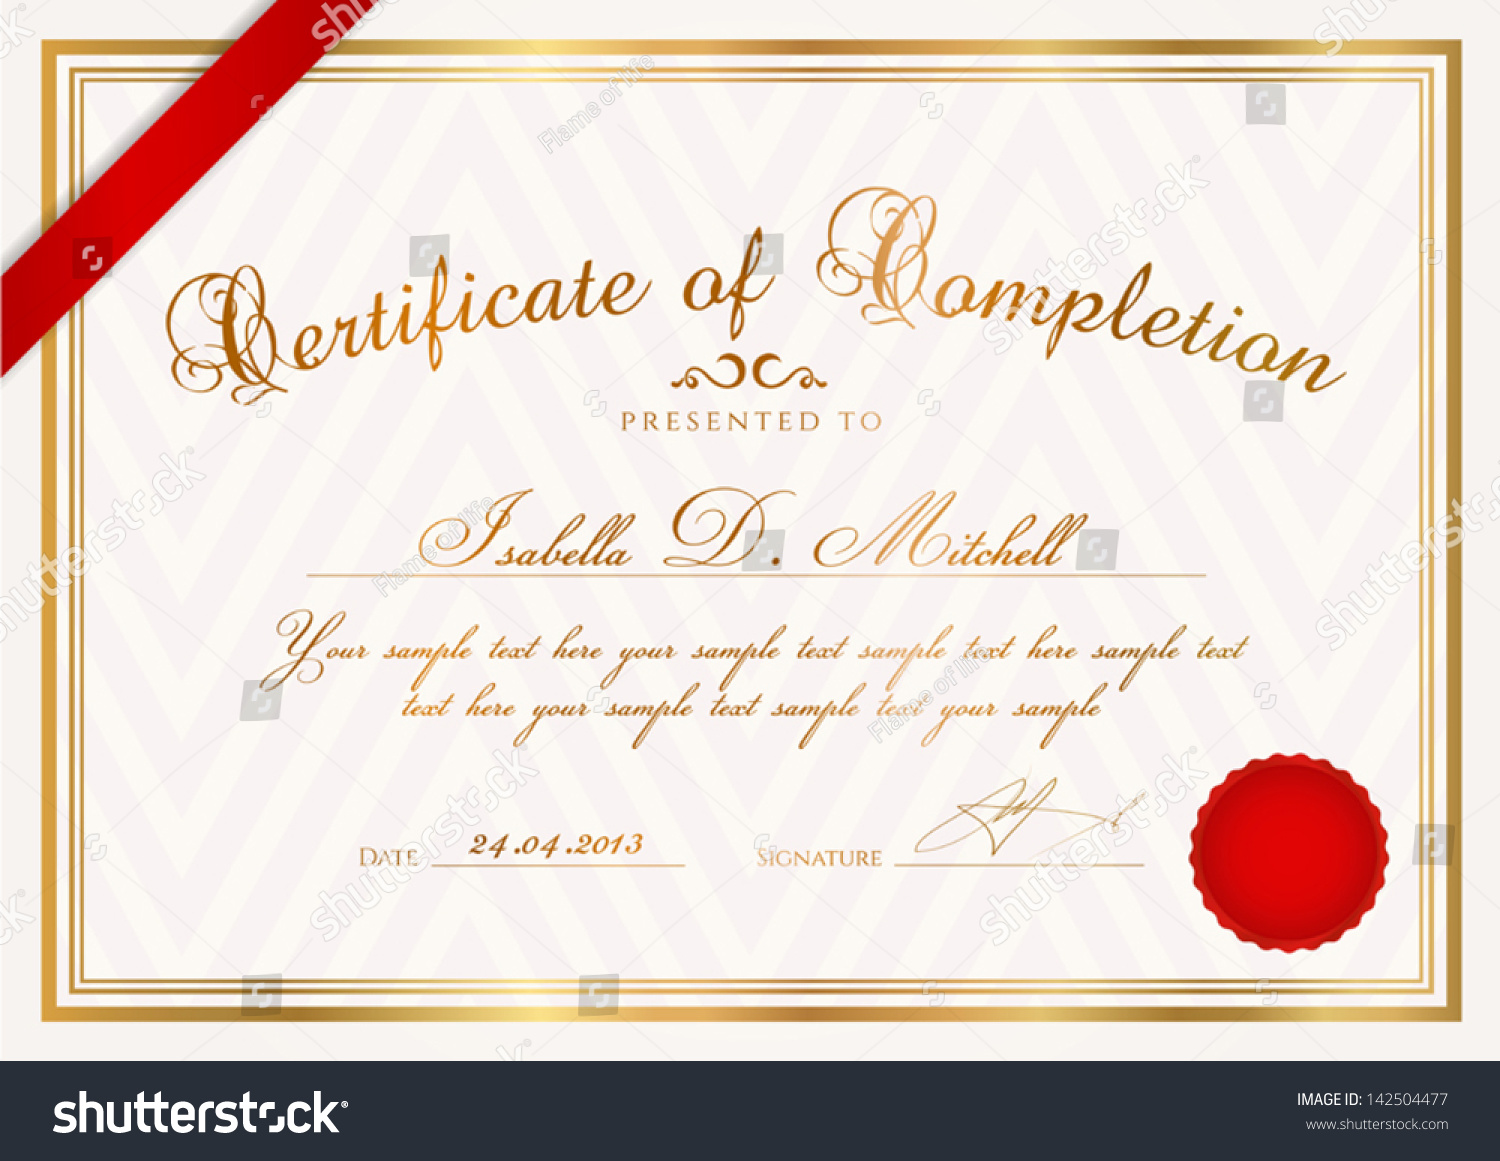 Certificate diploma completion design template sample stock vector certificate diploma of completion design template sample background with abstract pattern xflitez Images